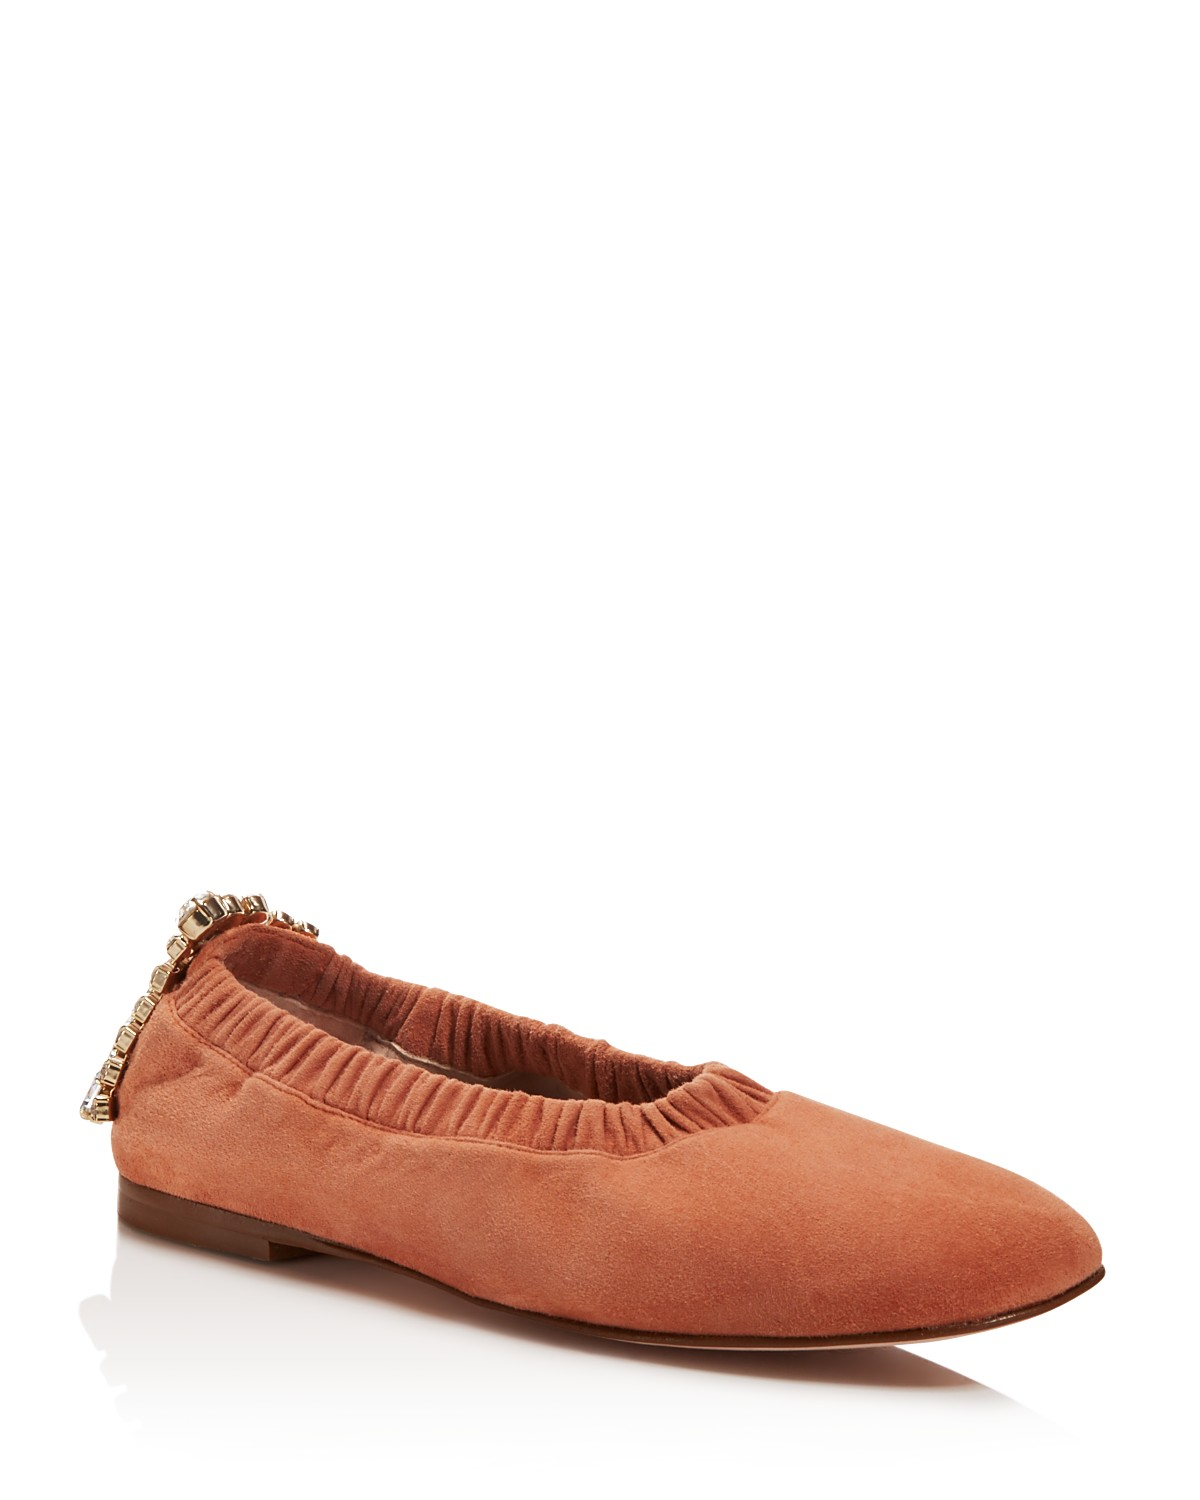 Stuart Weitzman Embellished Square-Toe Loafers buy cheap for nice hQCC7